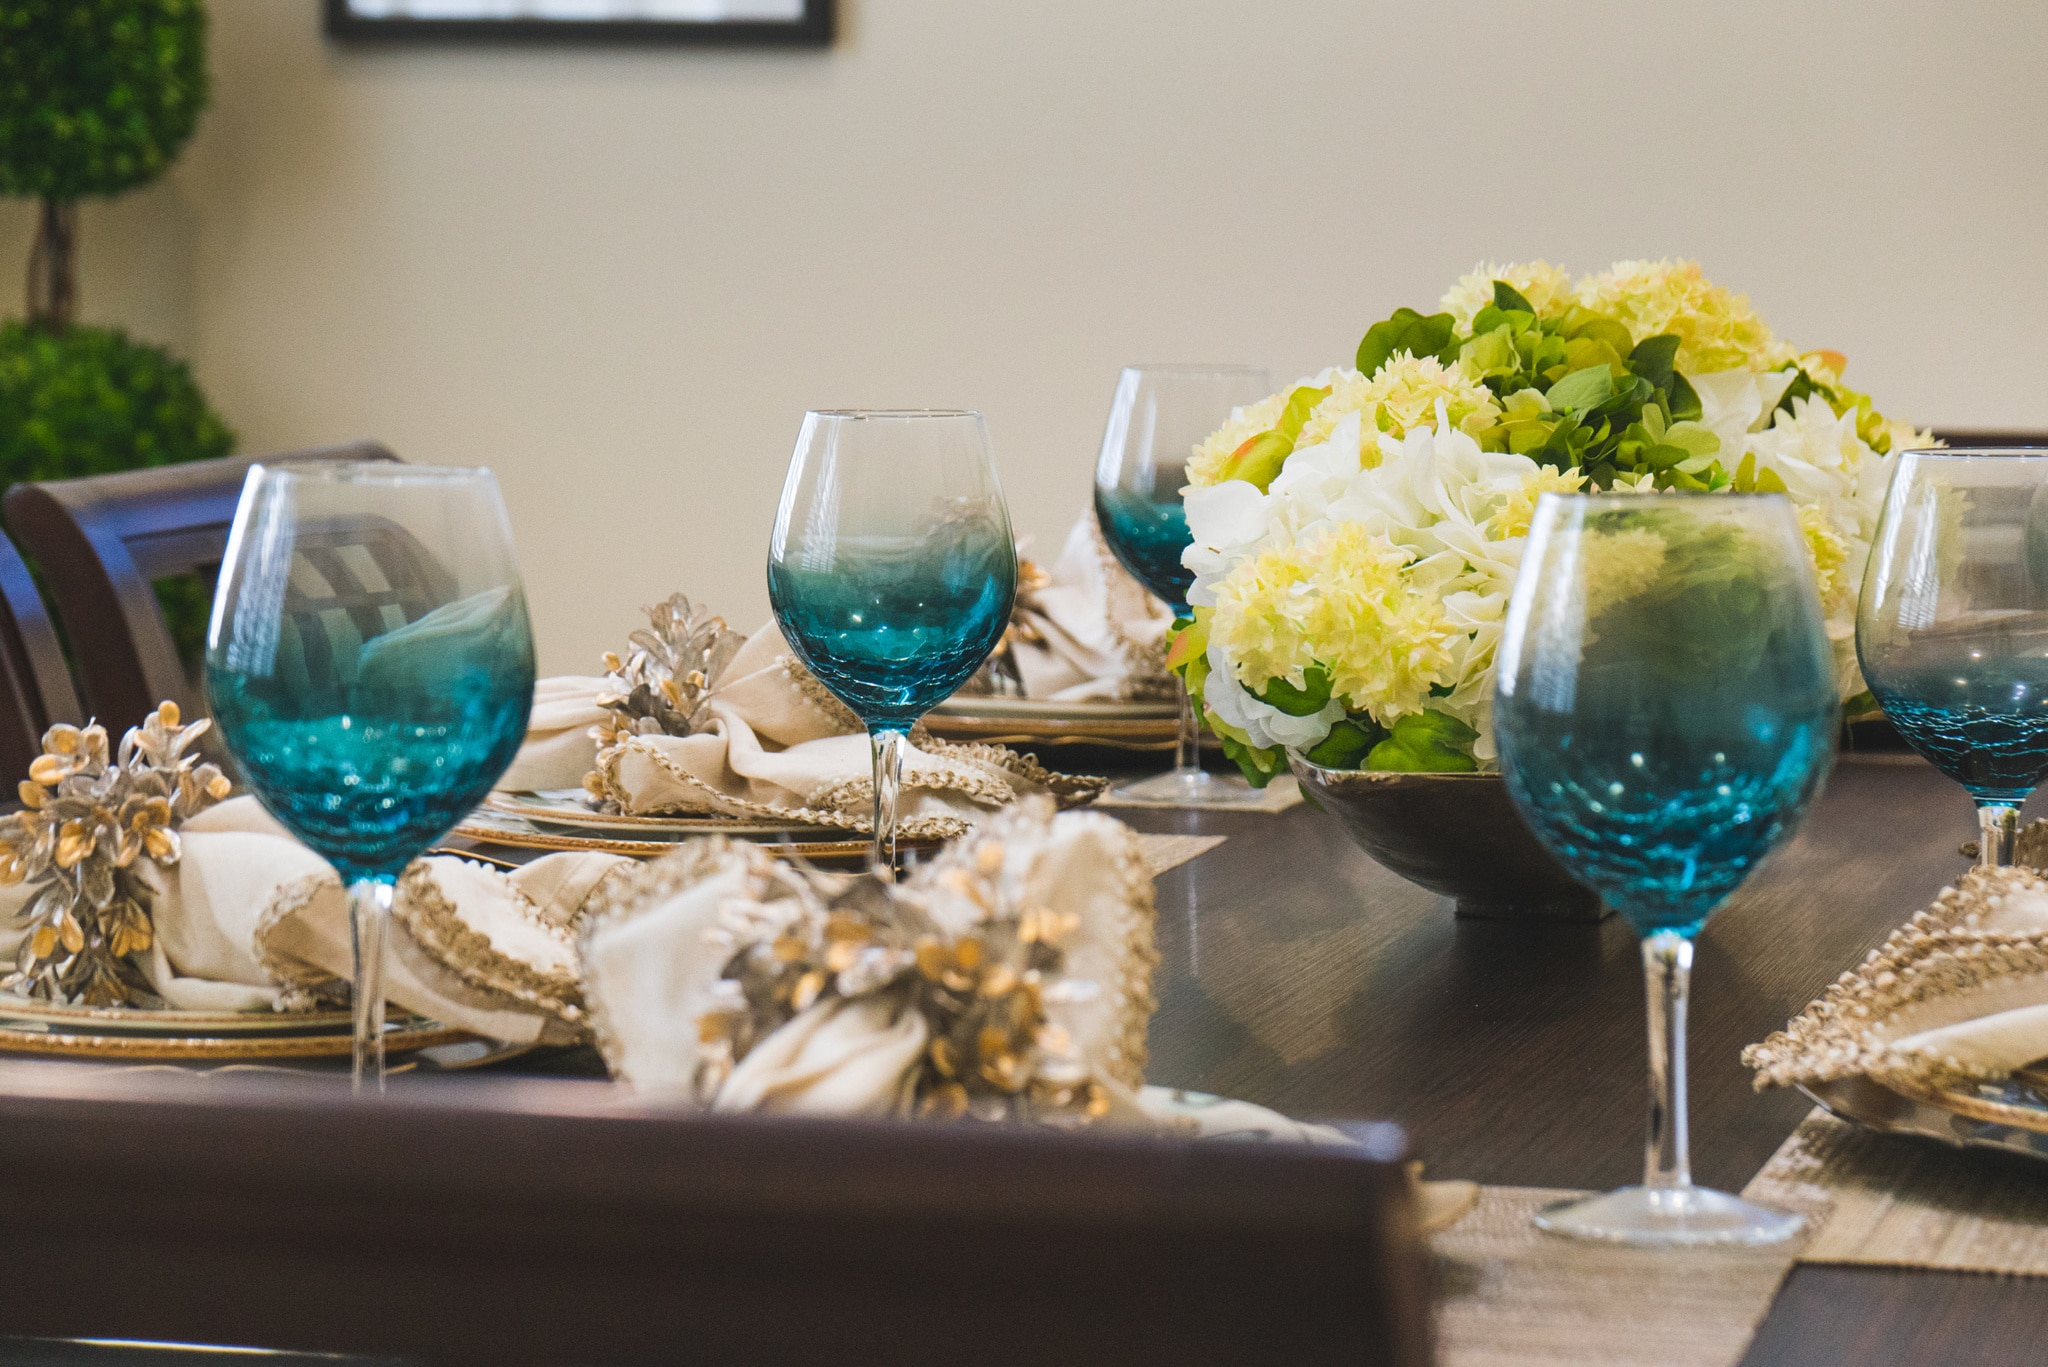 Angels Senior Living at Sarasota offers residents a private dining experience to reserve and enjoy with their friends and family, letting them entertain guests in comfort.